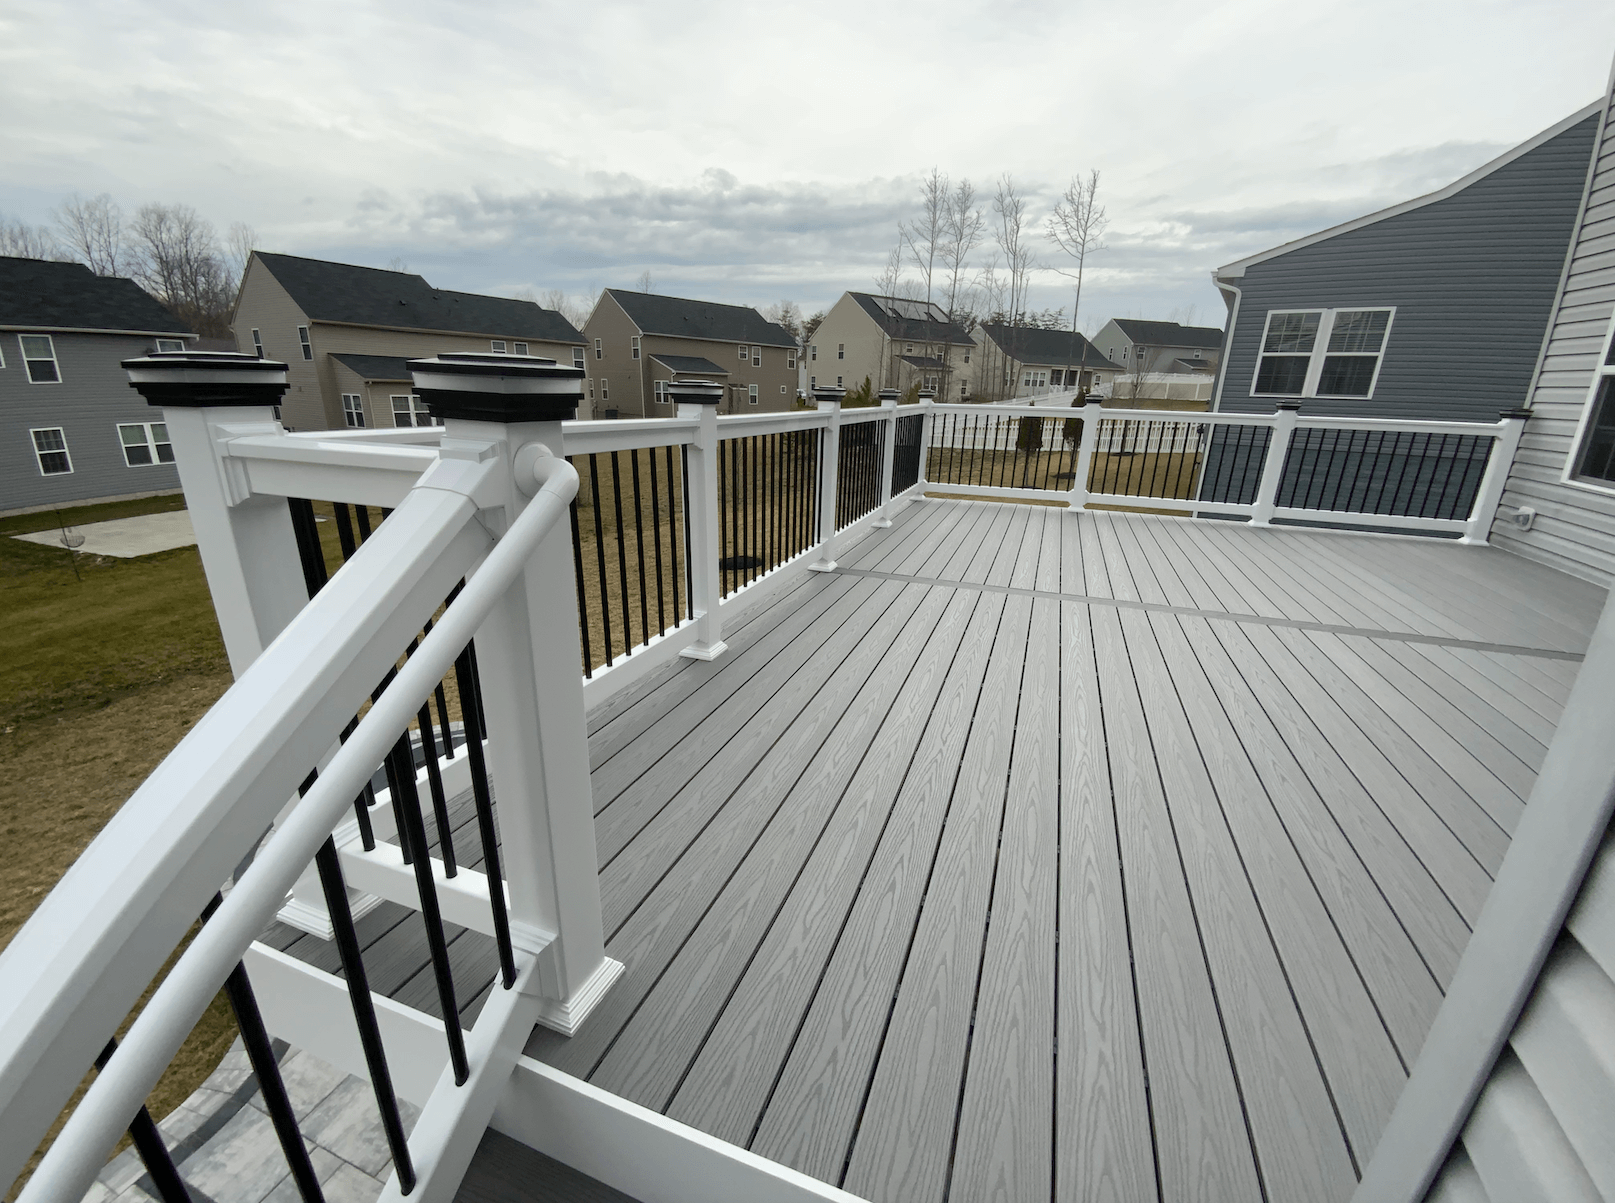 New Deck and Patio - Deck View